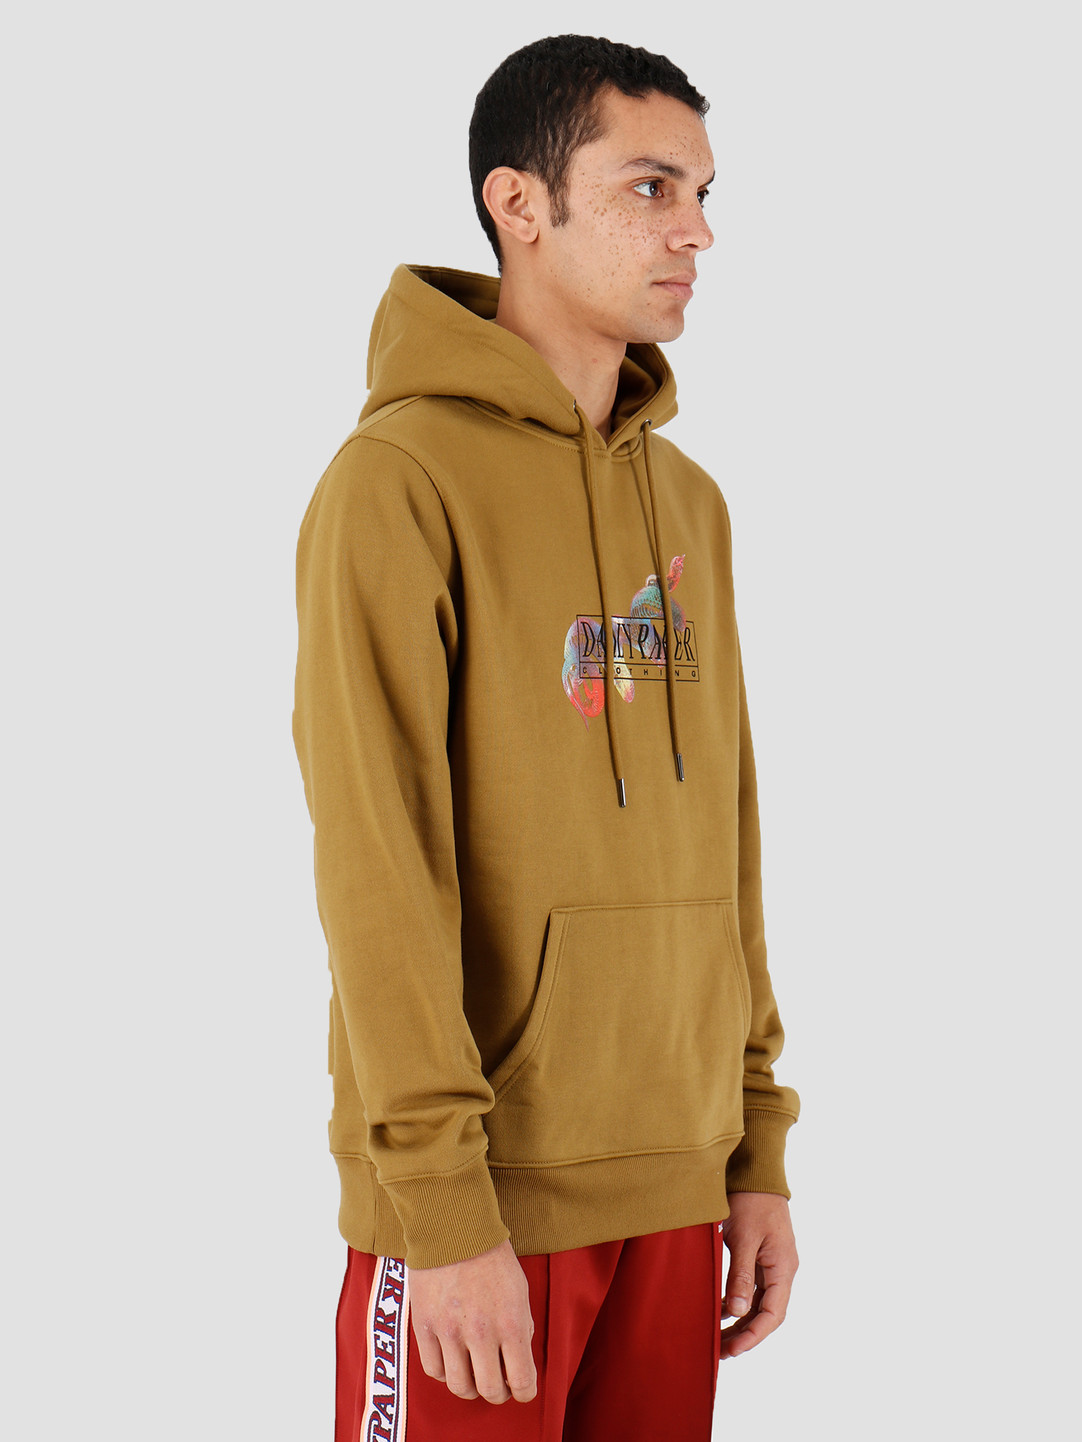 Daily Paper Daily Paper Hapla Hoodie Plantation 20S1HD01-01